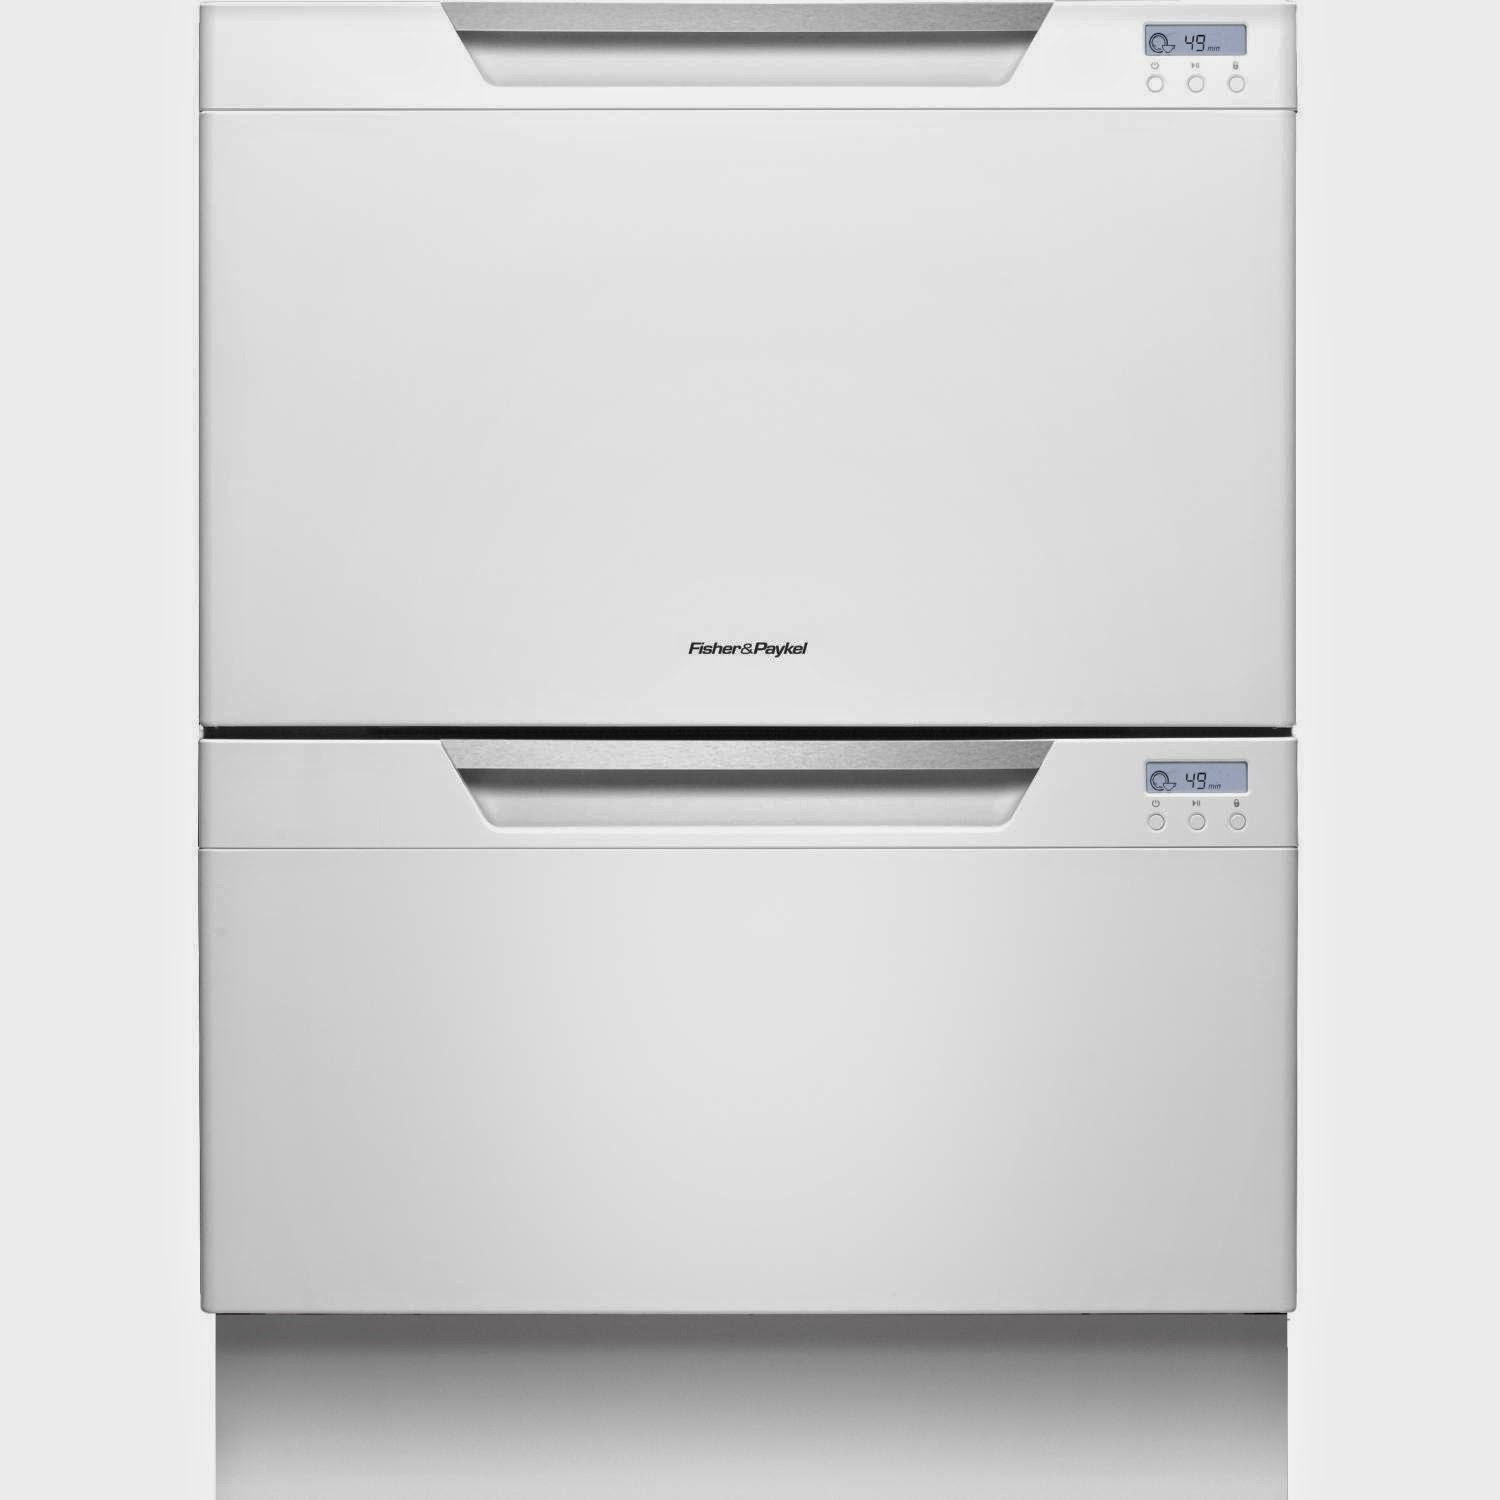 Drawer Dishwashers